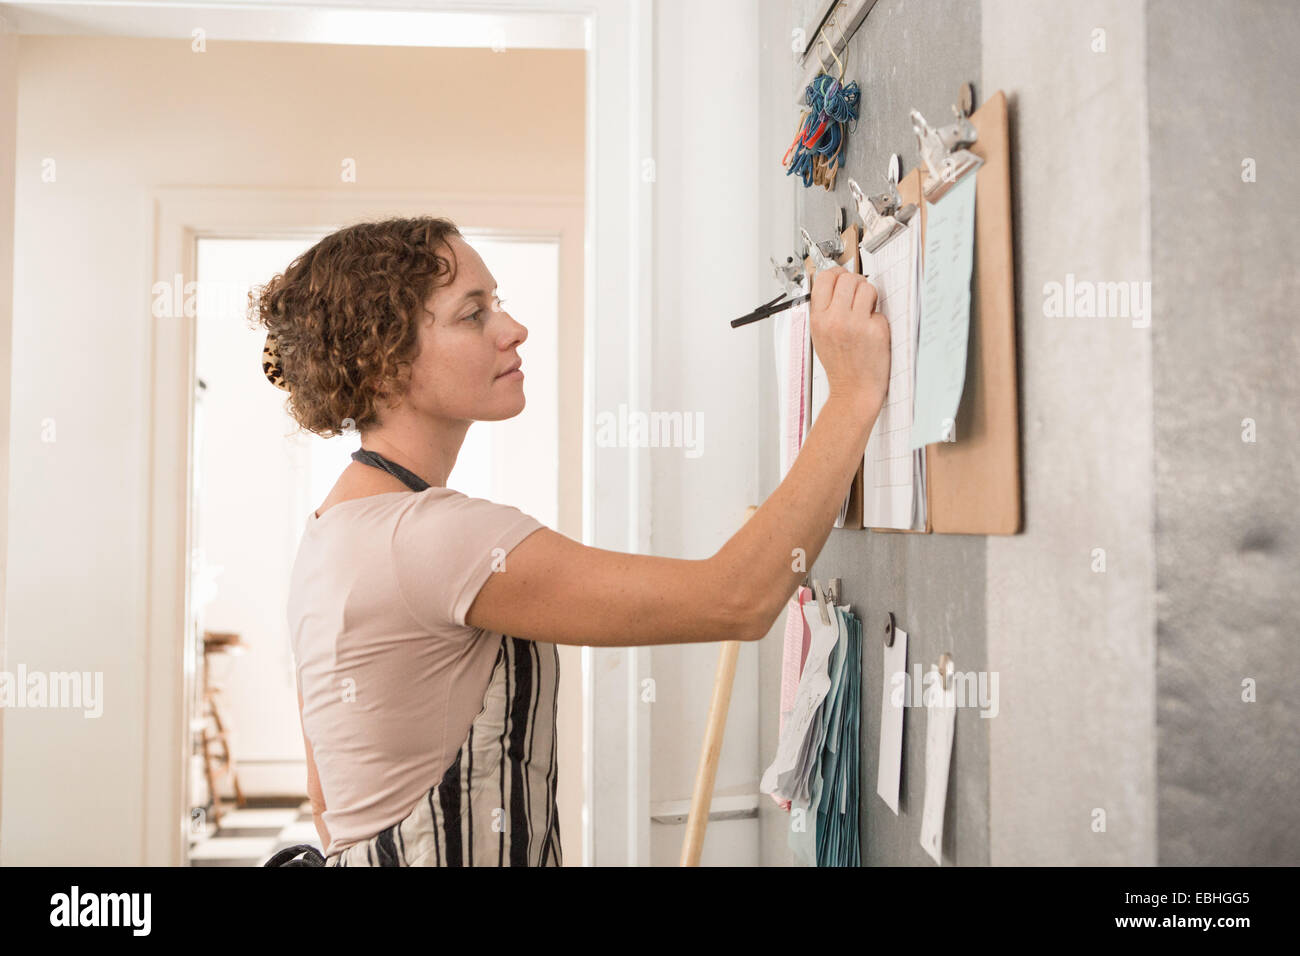 Female shop assistant writing on wall clipboards in kitchen at country store - Stock Image